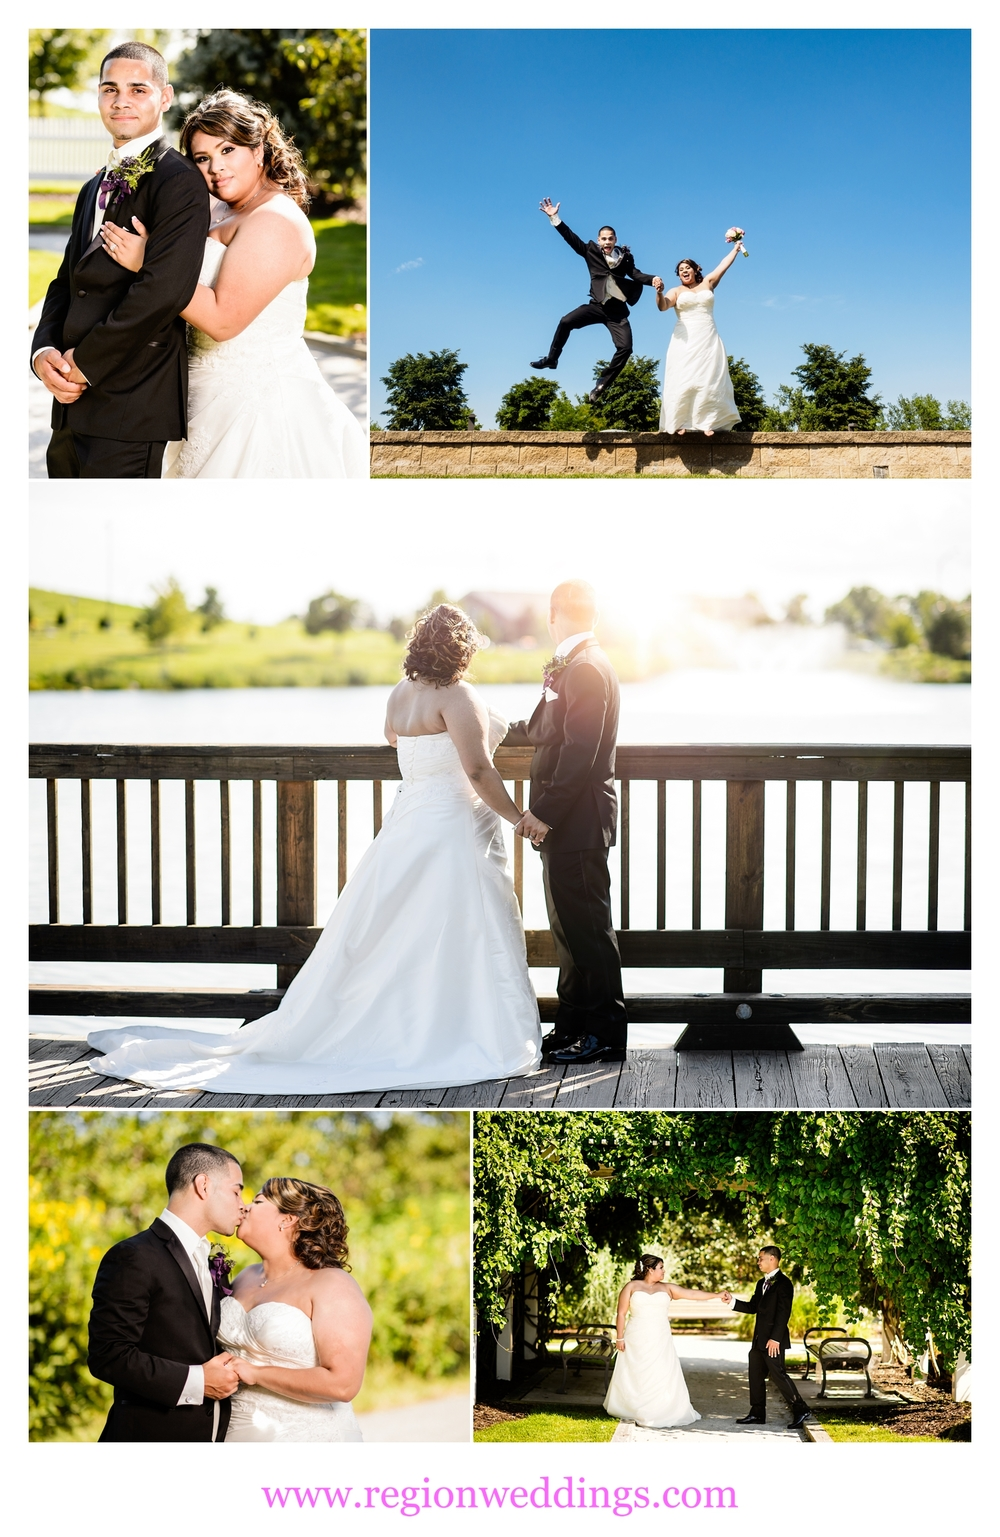 summer wedding photos at centennial park in munster indiana